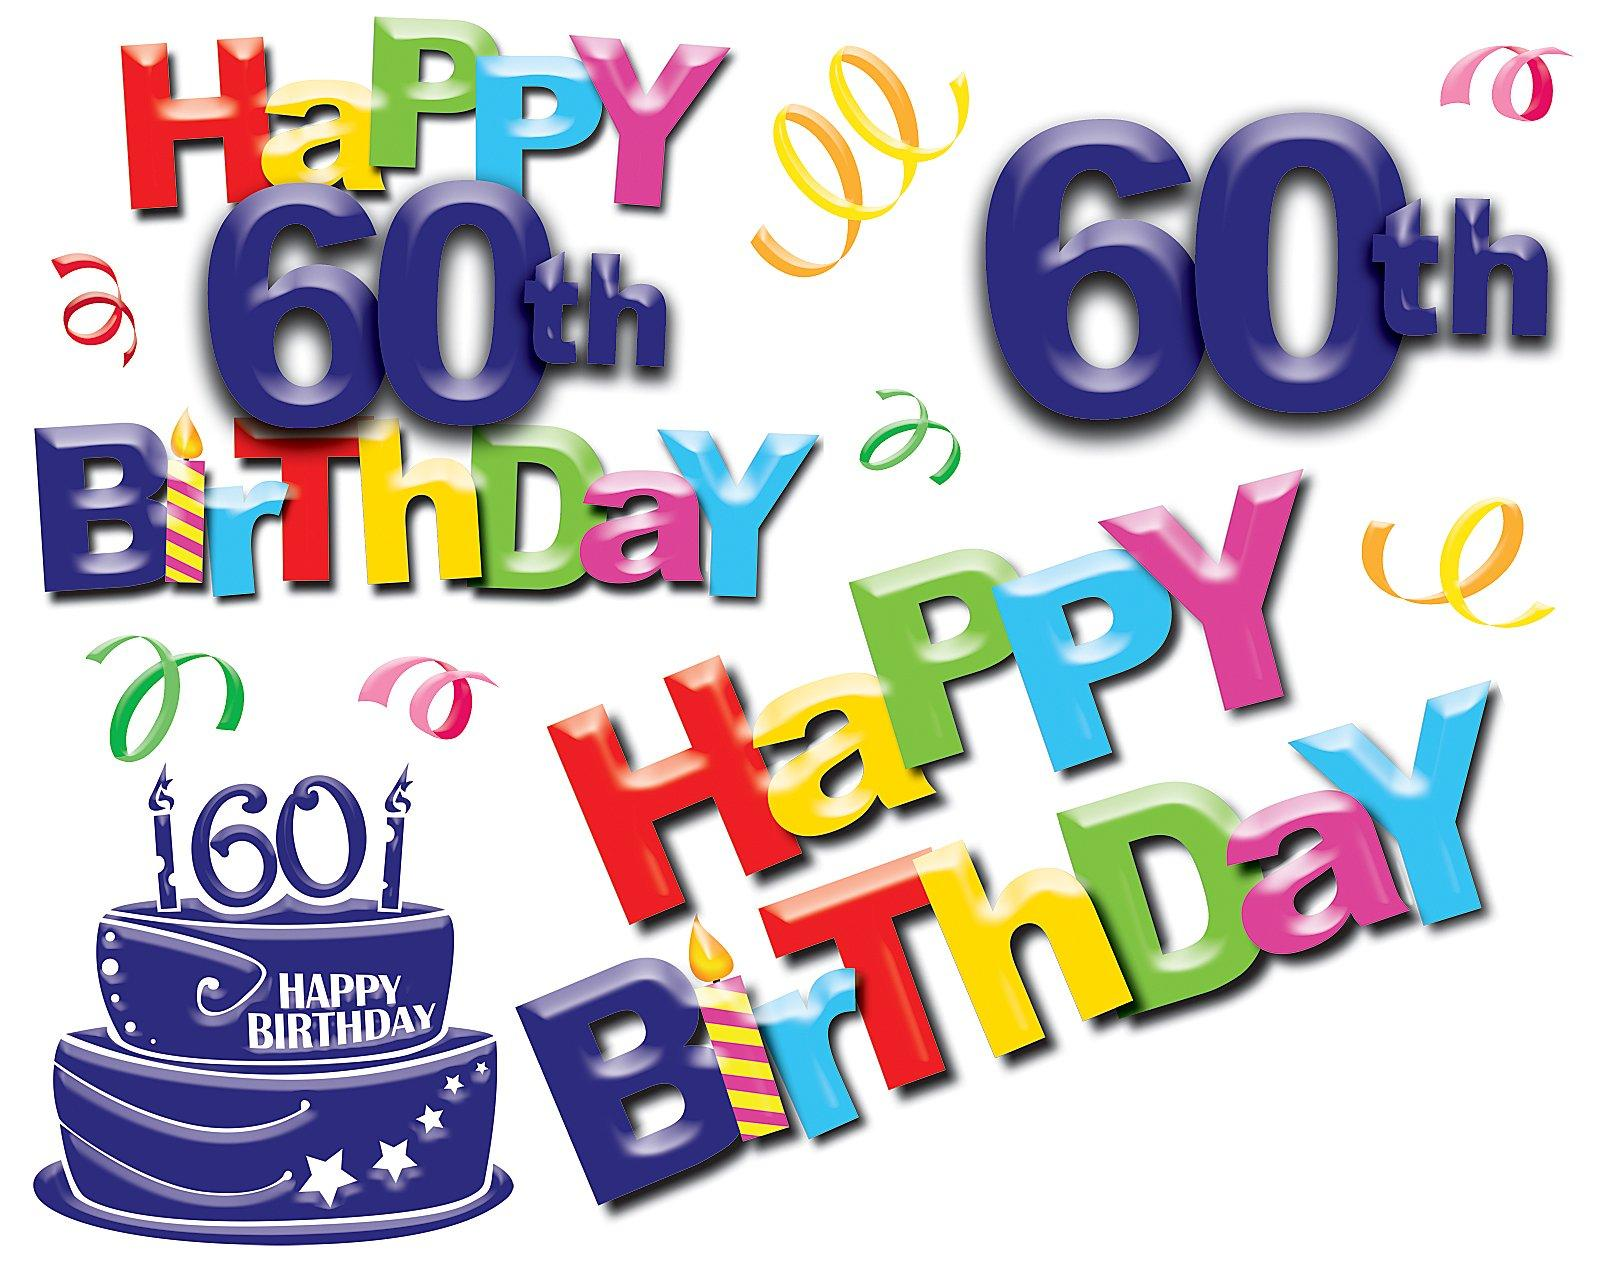 birthday clipart for women ; 60th-birthday-png-hd-60th-birthday-quotes-for-women-clipart-1600